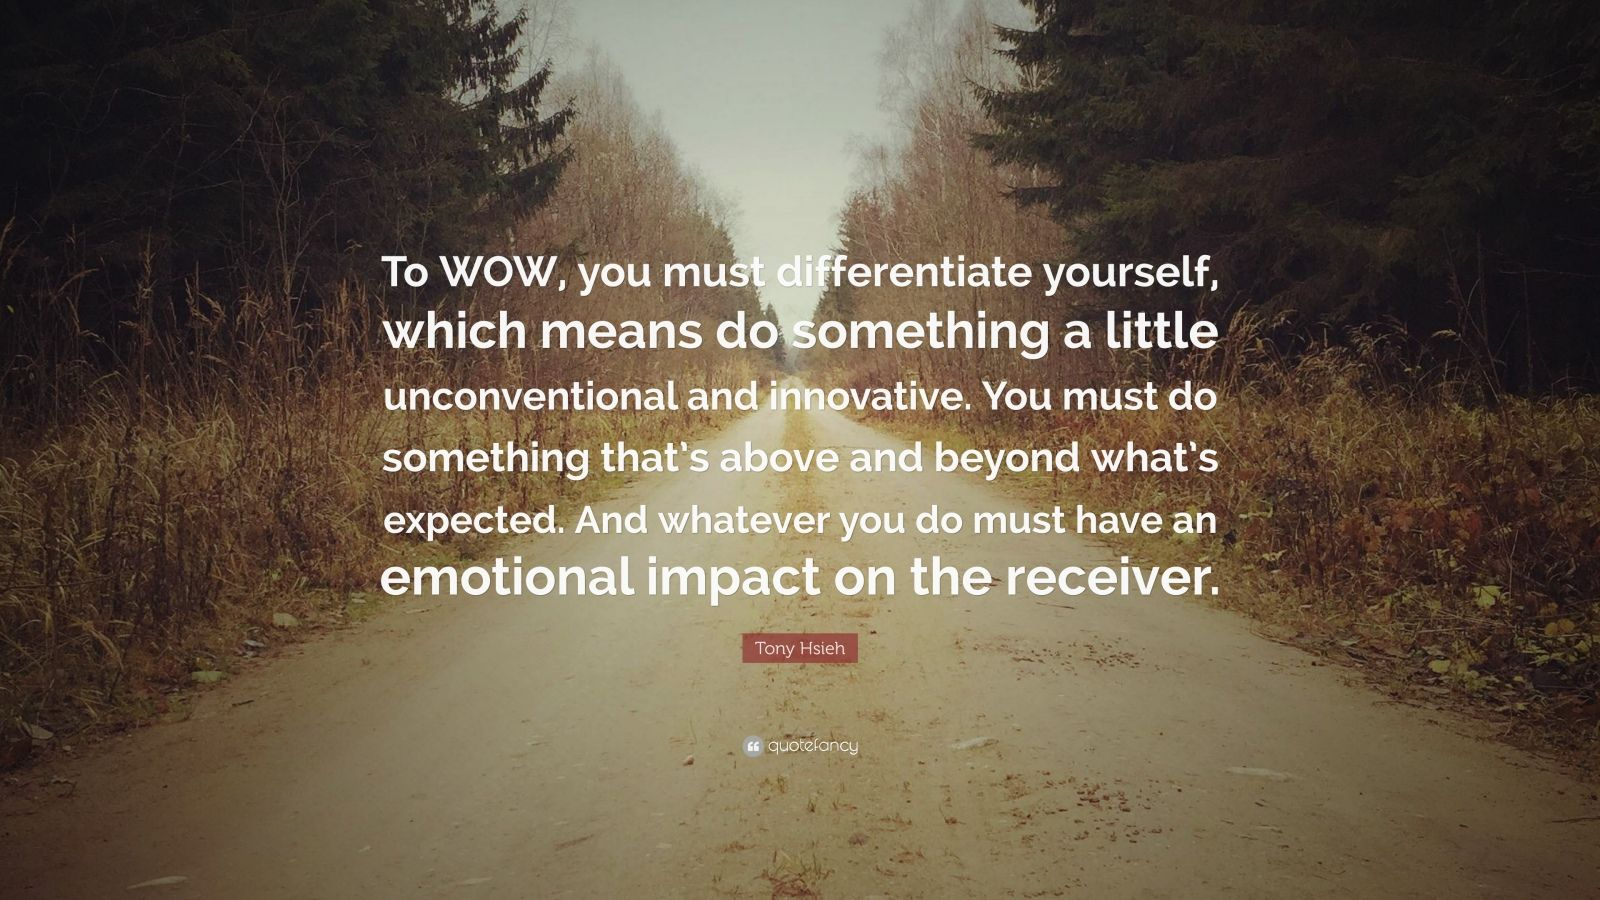 """Tony Hsieh Quote: """"To WOW, you must differentiate yourself, which means do something a little unconventional and innovative. You must do something that's above and beyond what's expected. And whatever you do must have an emotional impact on the receiver."""""""